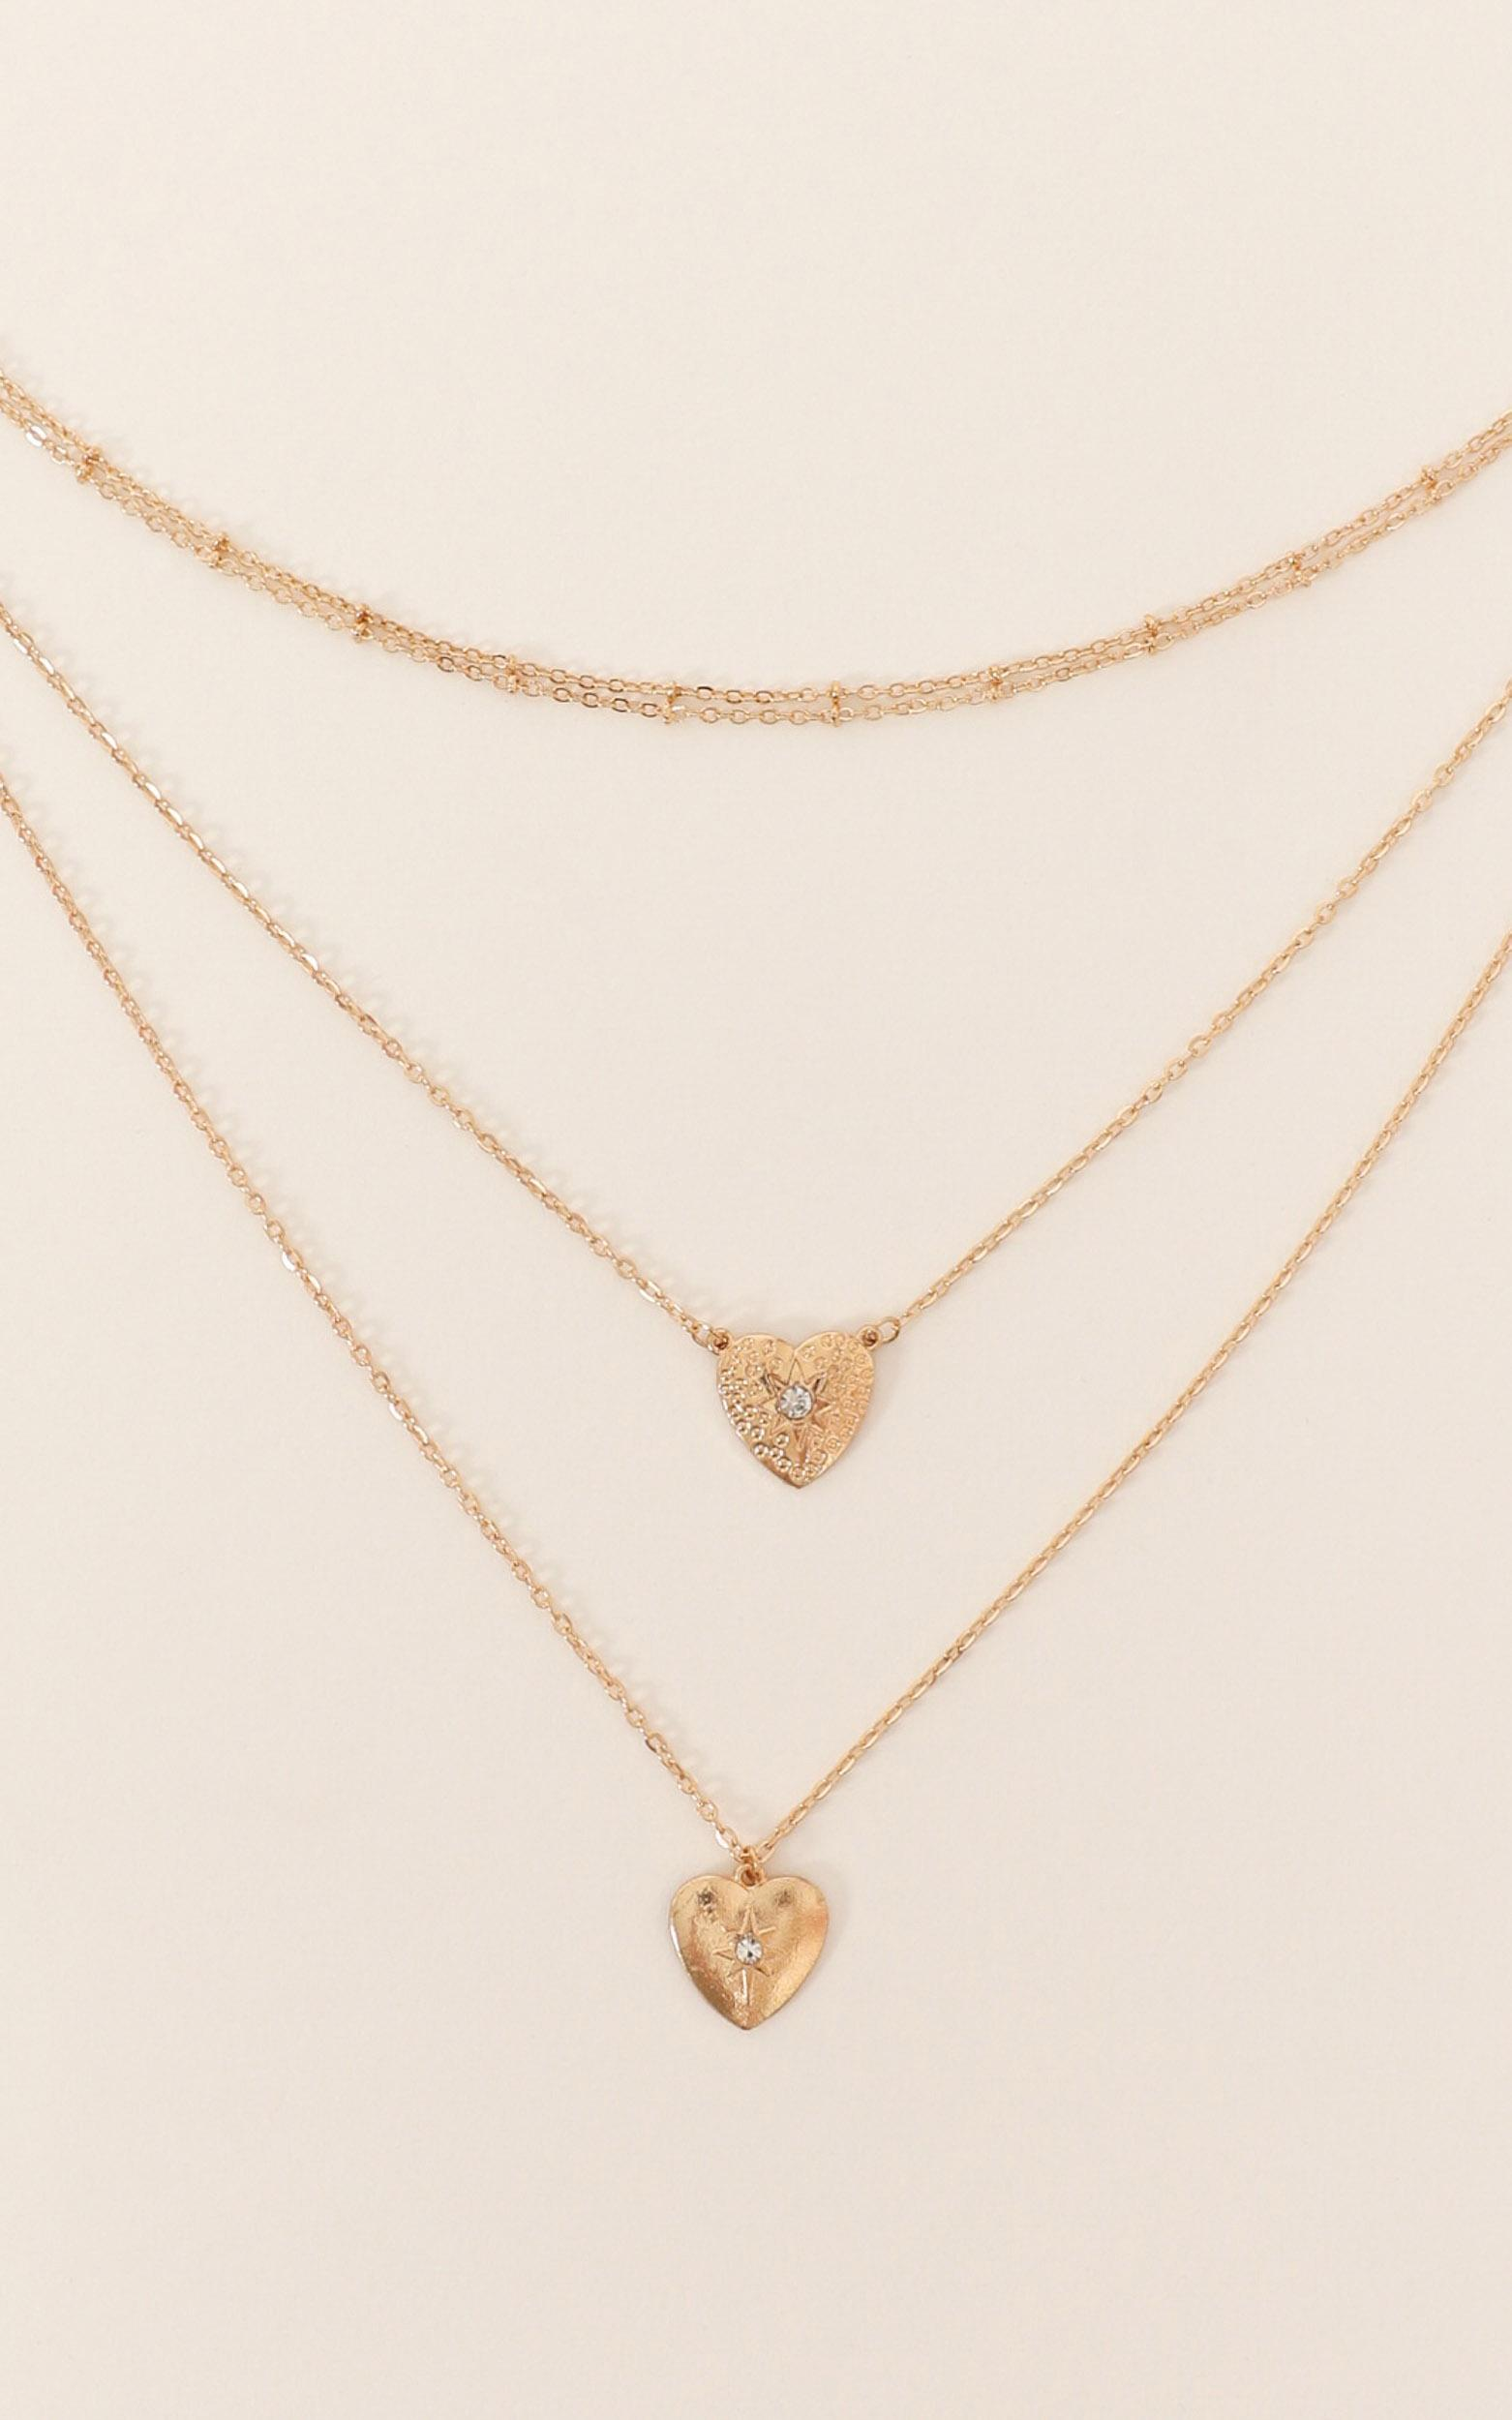 More To Enjoy Necklace In Gold, , hi-res image number null